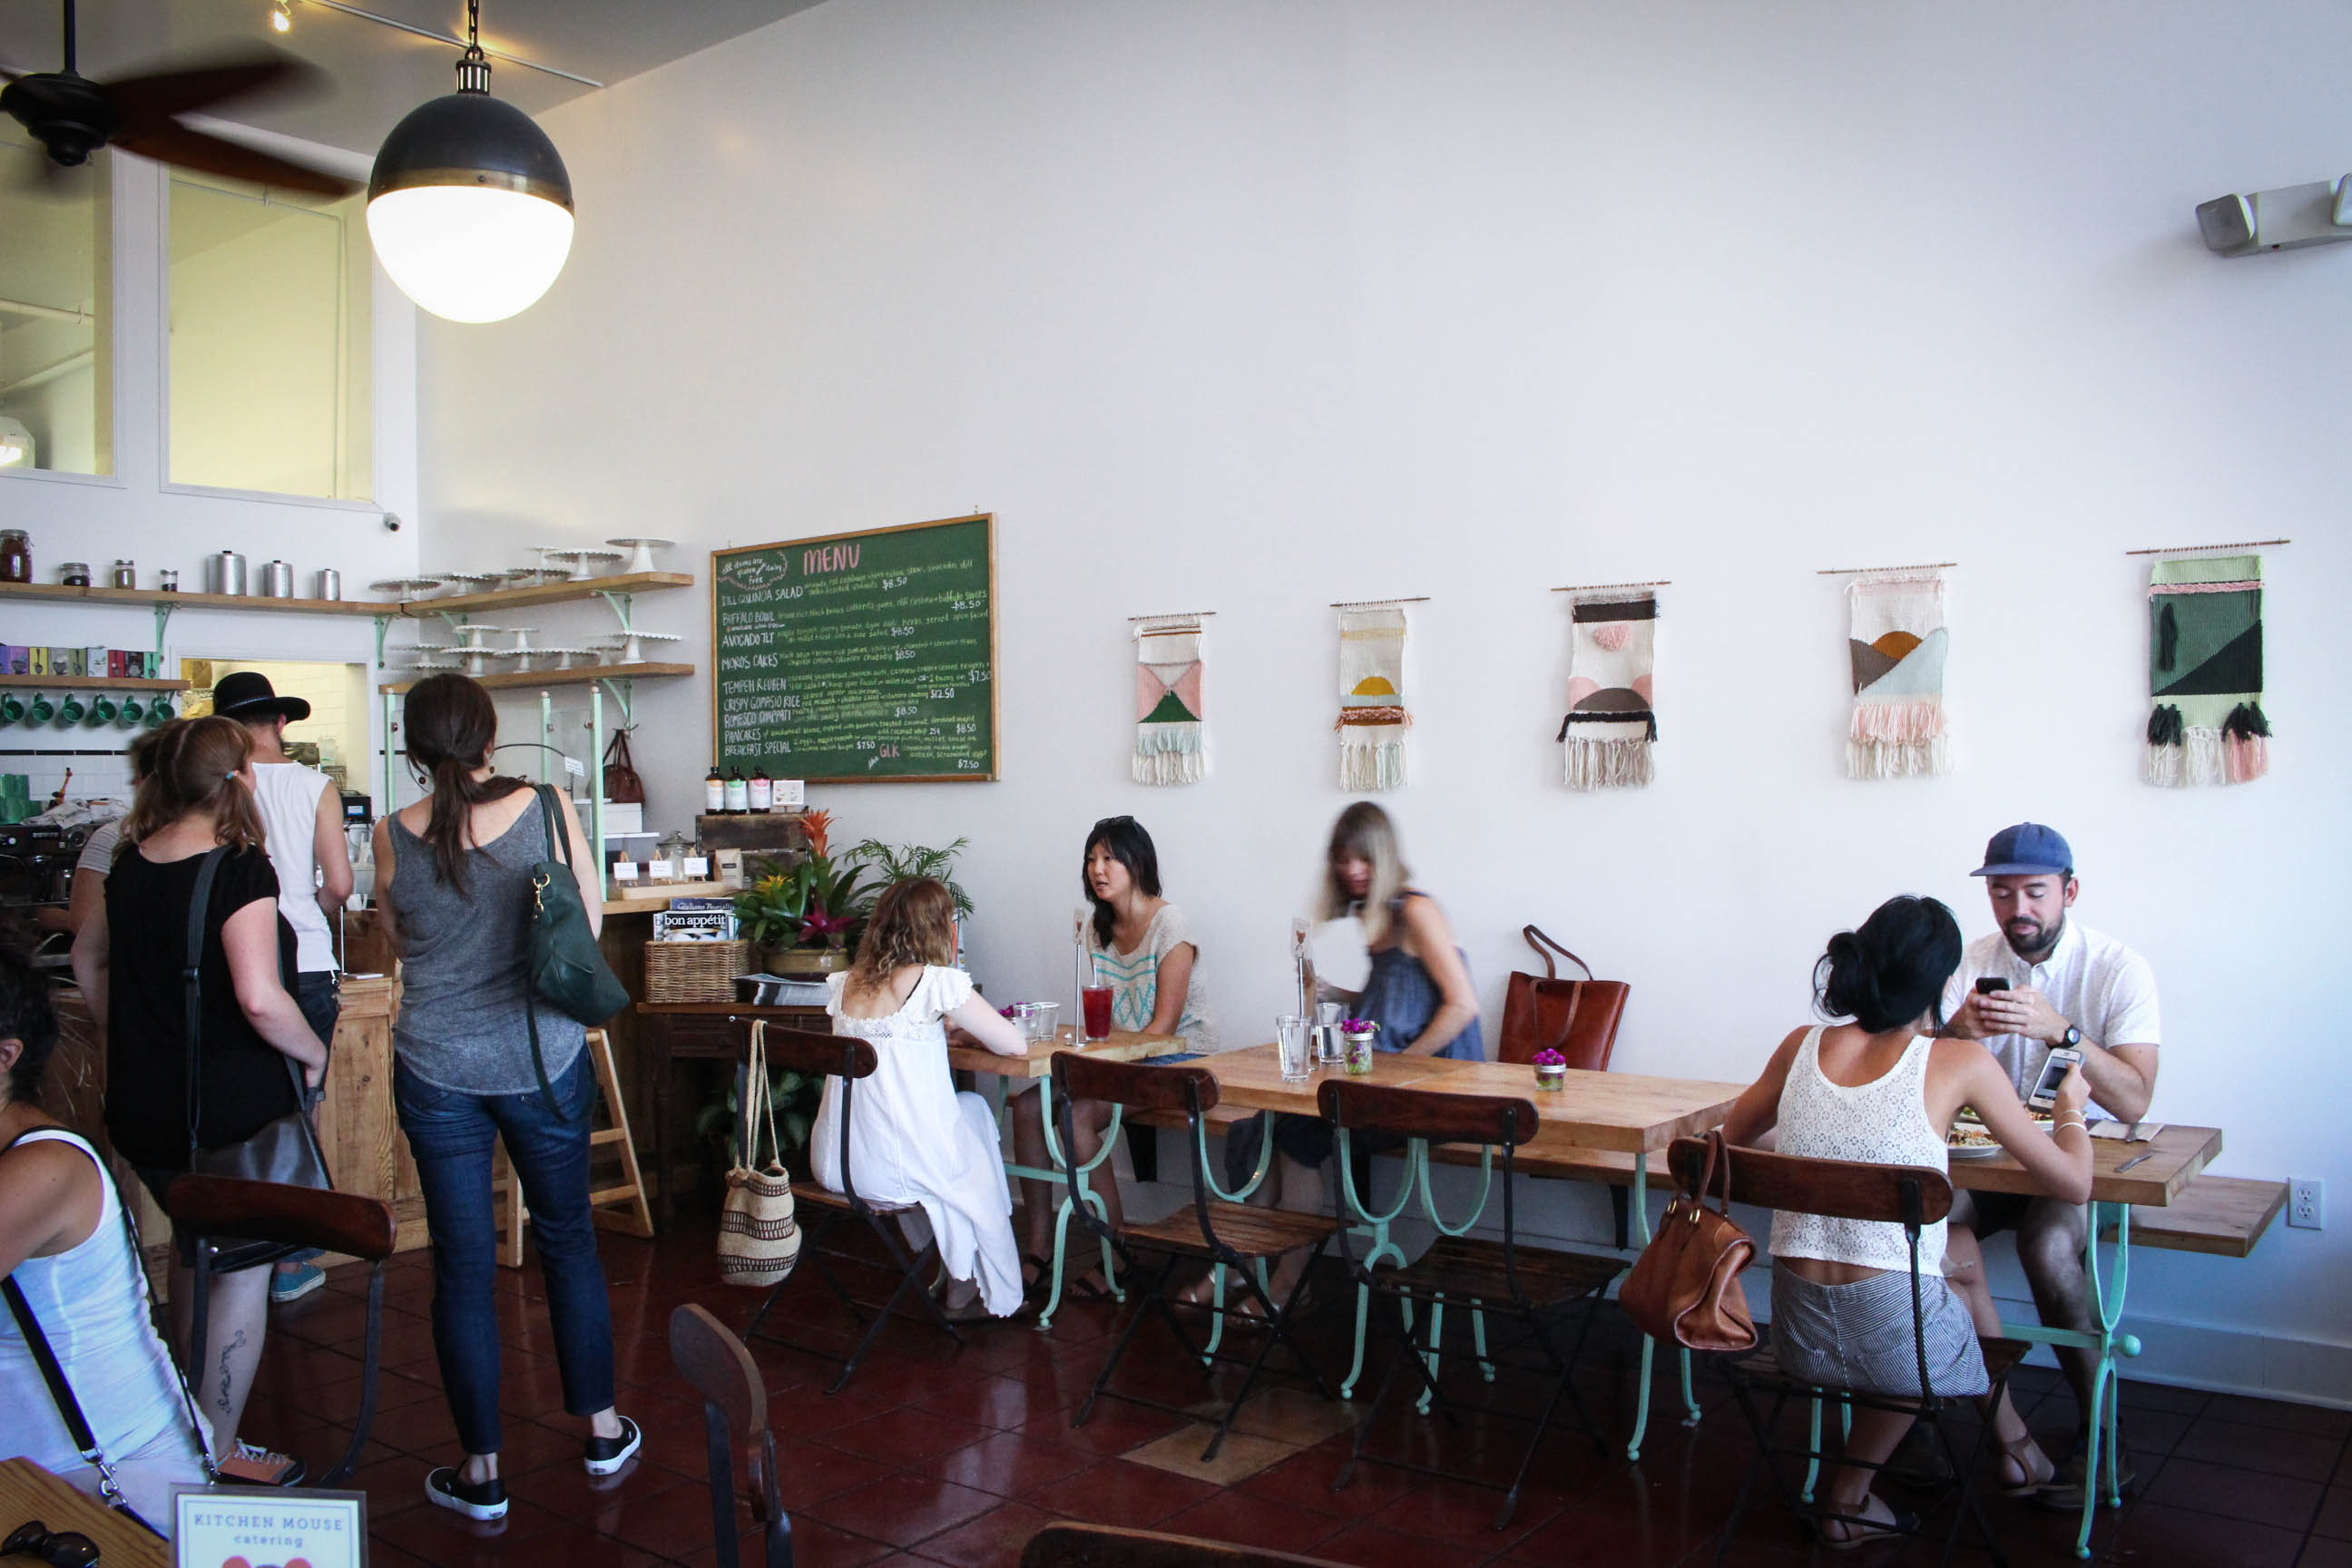 KitchMouhome-tour-kitchen-mouse-cafe-los-angeles-vegetalien-mademoiselle-claudine